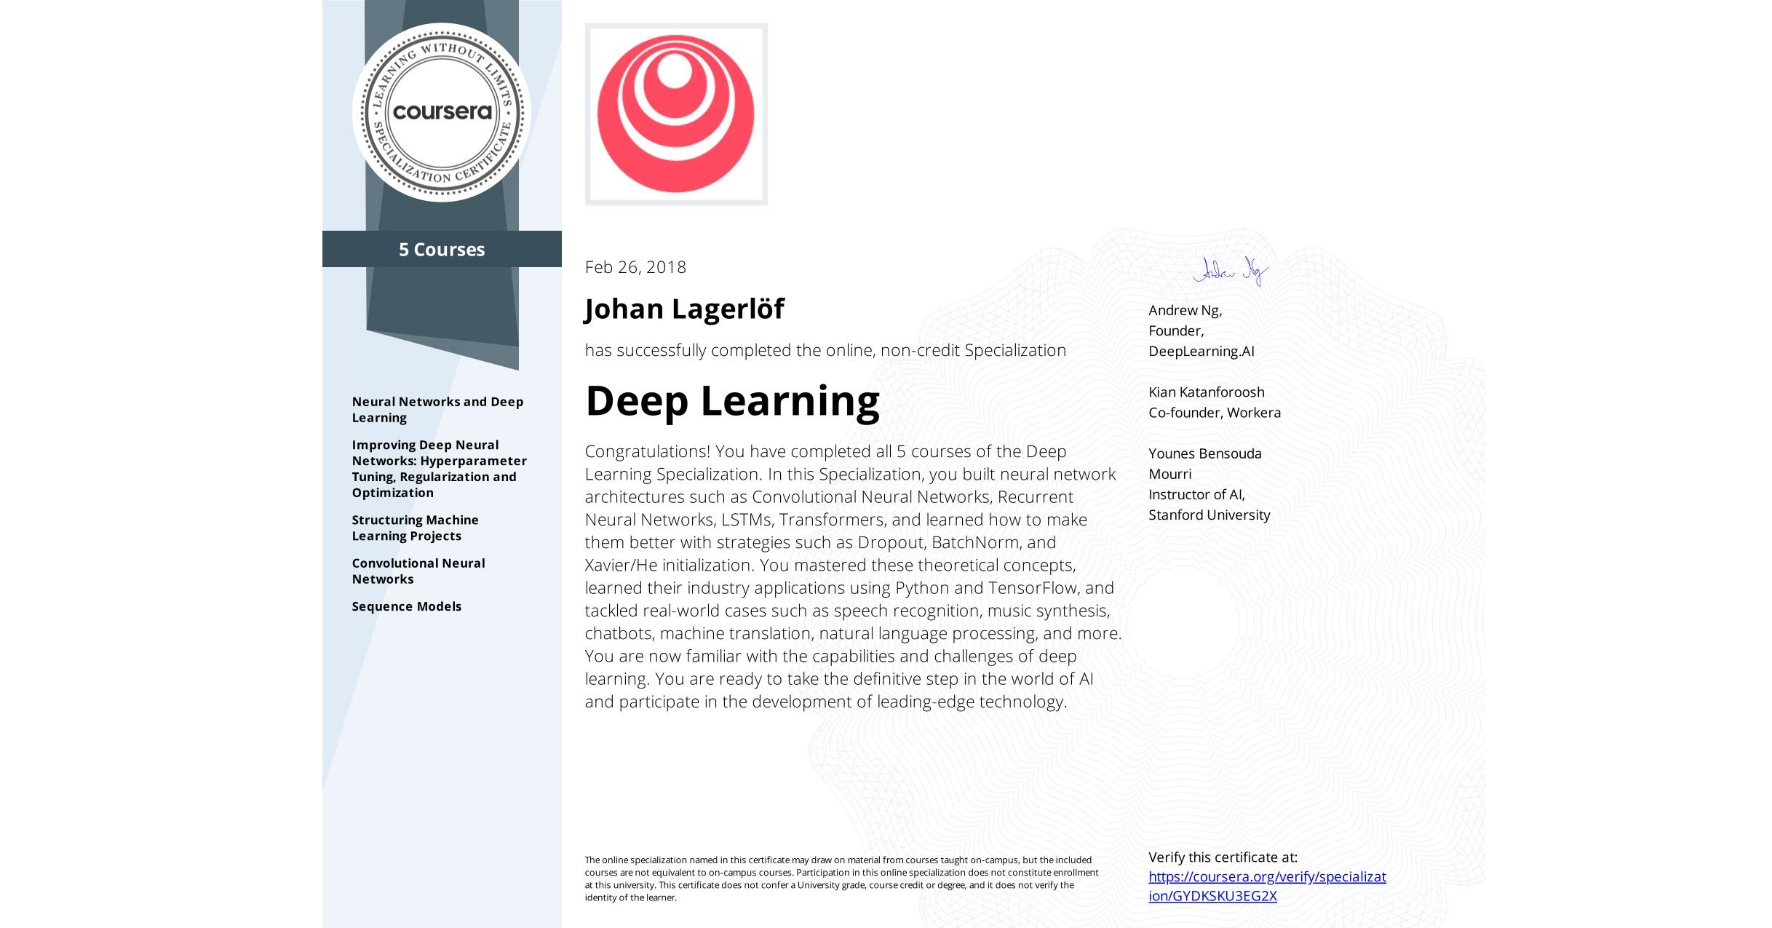 View certificate for Johan Lagerlöf, Deep Learning, offered through Coursera. Congratulations! You have completed all five courses of the Deep Learning Specialization.  In this Specialization, you built neural network architectures such as Convolutional Neural Networks, Recurrent Neural Networks, LSTMs, Transformers and learned how to make them better with strategies such as Dropout, BatchNorm, Xavier/He initialization, and more. You mastered these theoretical concepts and their application using Python and TensorFlow and also tackled real-world case studies such as autonomous driving, sign language reading, music generation, computer vision, speech recognition, and natural language processing.   You're now familiar with the capabilities, challenges, and consequences of deep learning and are ready to participate in the development of leading-edge AI technology.